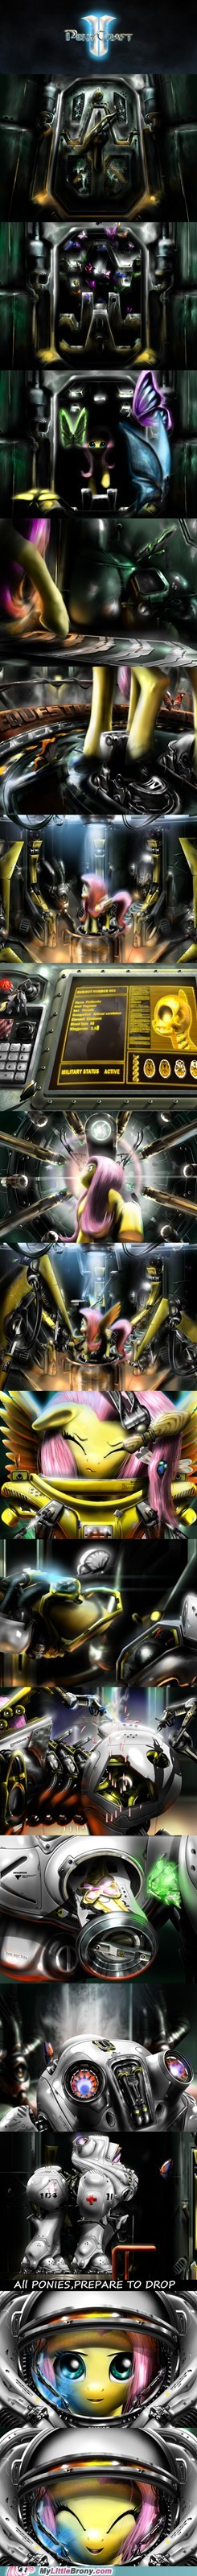 crossover,fluttershy,ponycraft 2,starcraft 2,video games